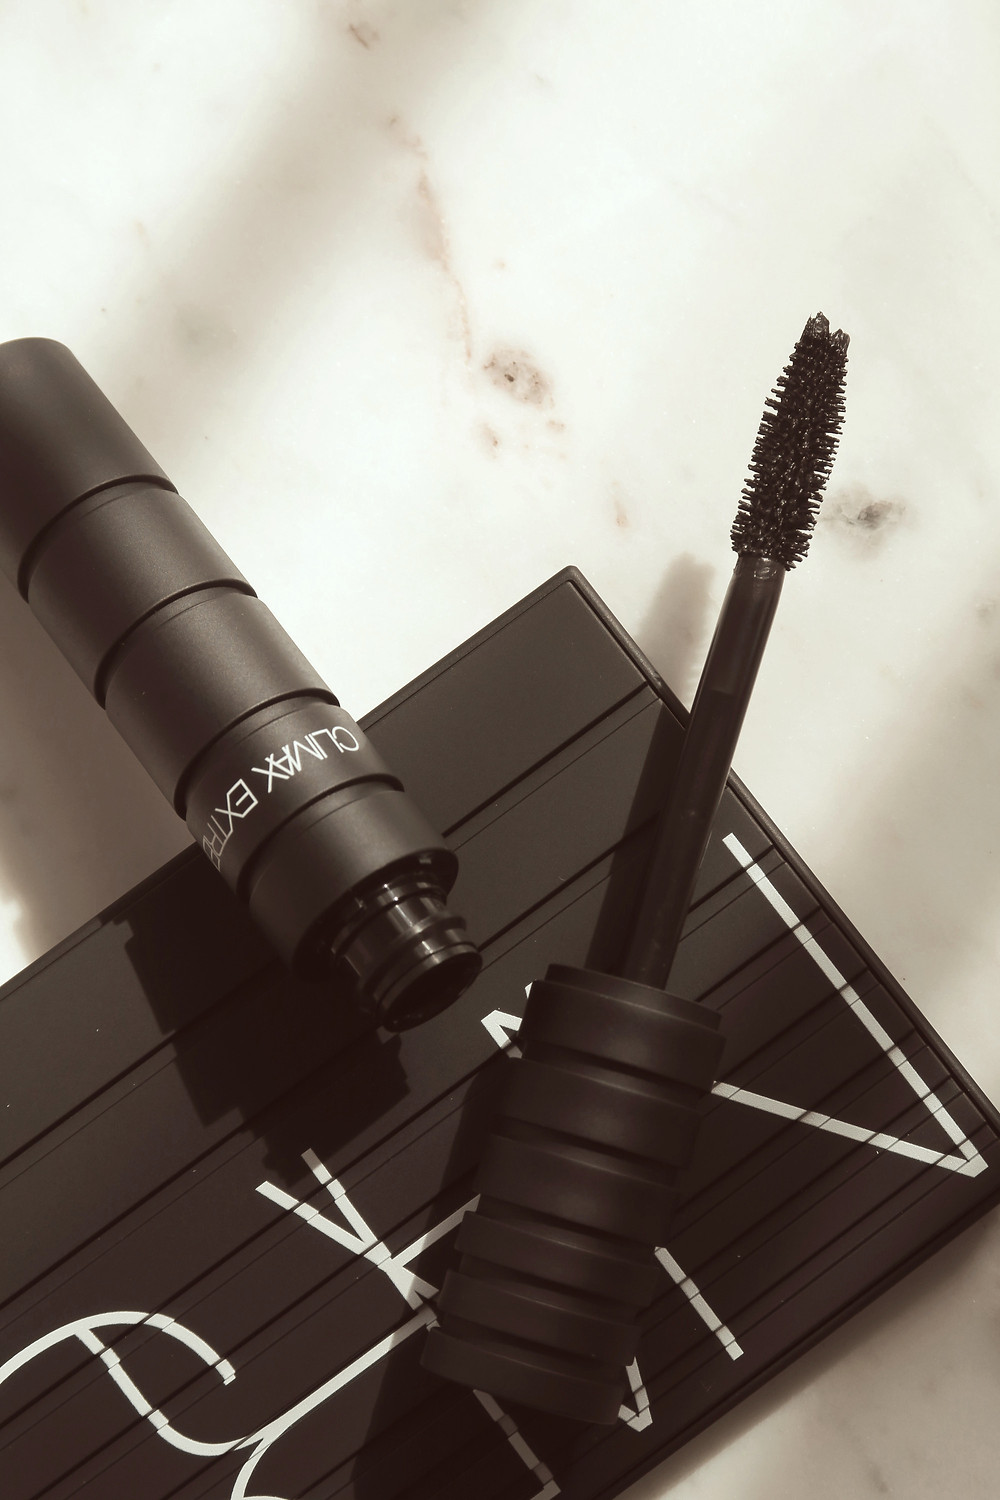 NARS Climax Extreme Volume Mascara Review